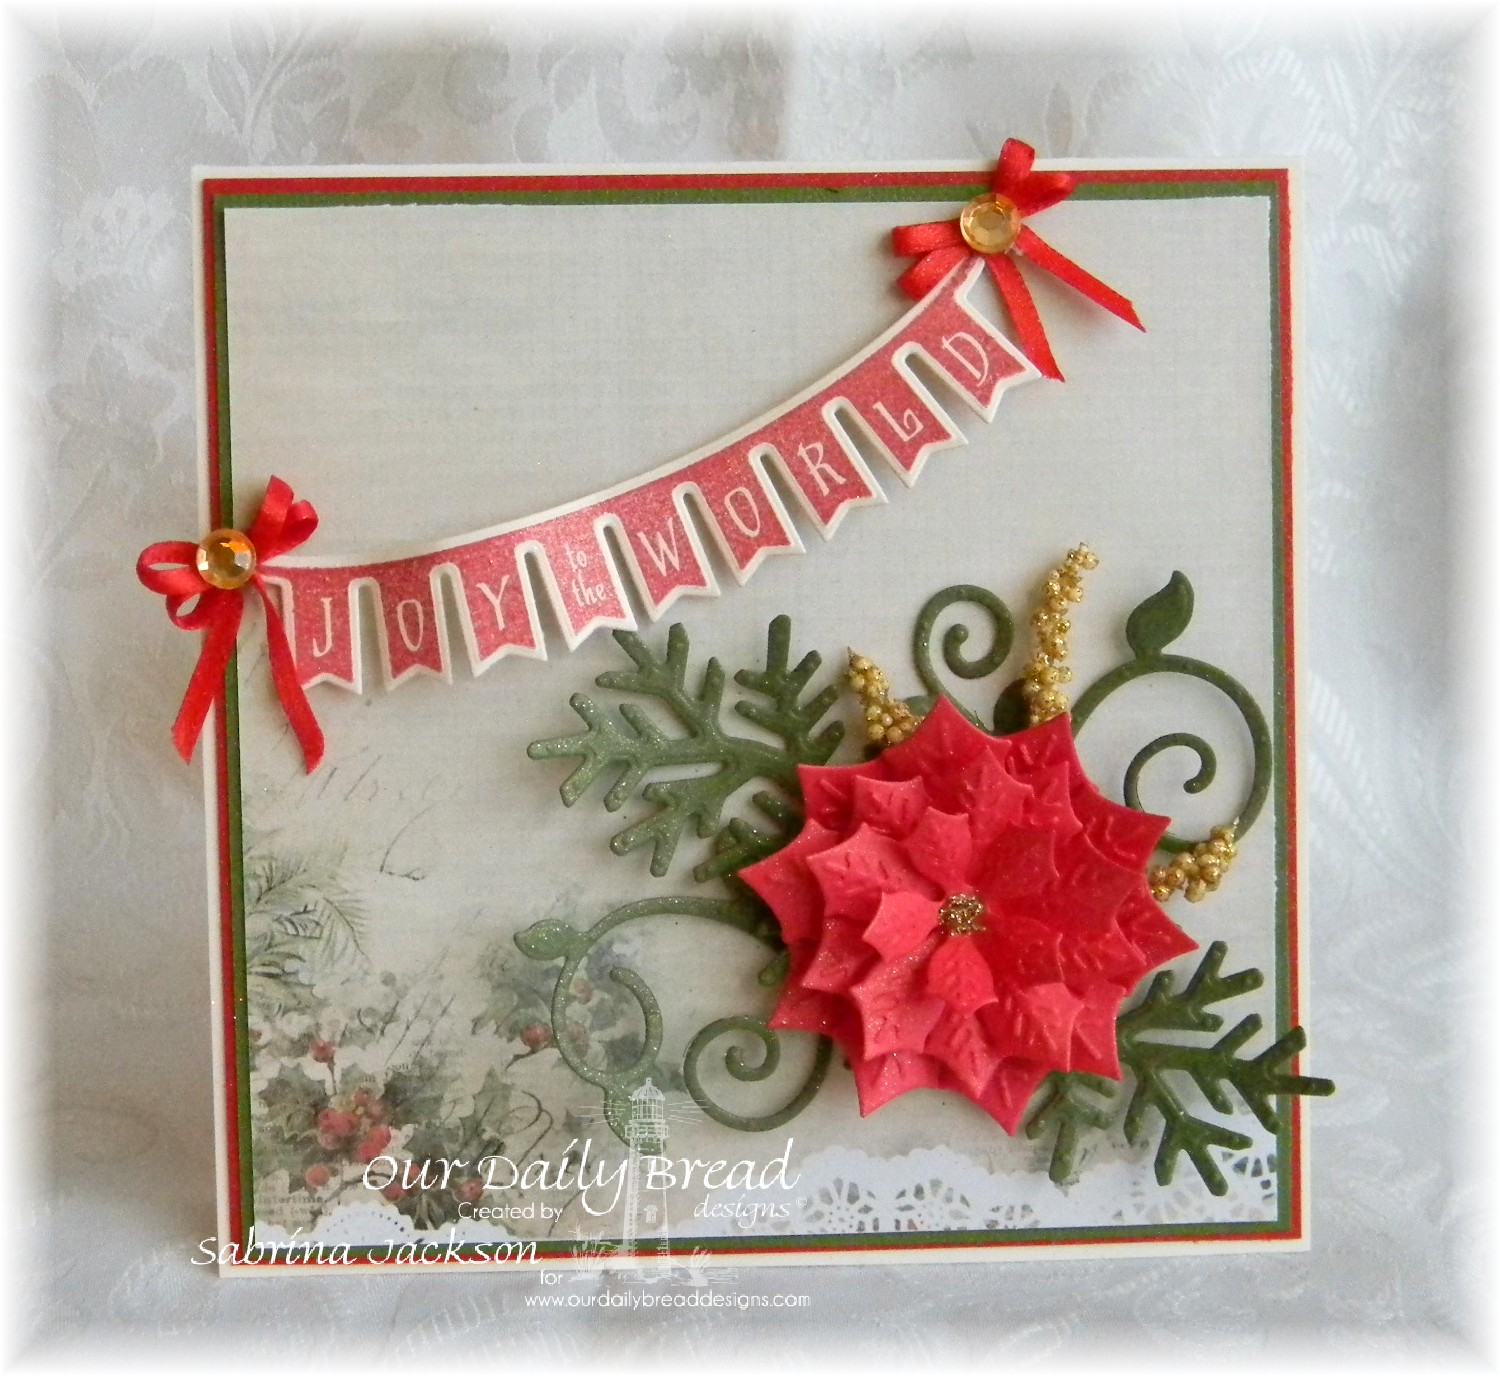 Stamps - Our Daily Bread Designs Christmas Pennant Swag, ODBD Custom Peaceful Poinsettias Die, ODBD Custom Fancy Foliage Die, ODBD Custom Pennant Swag Die